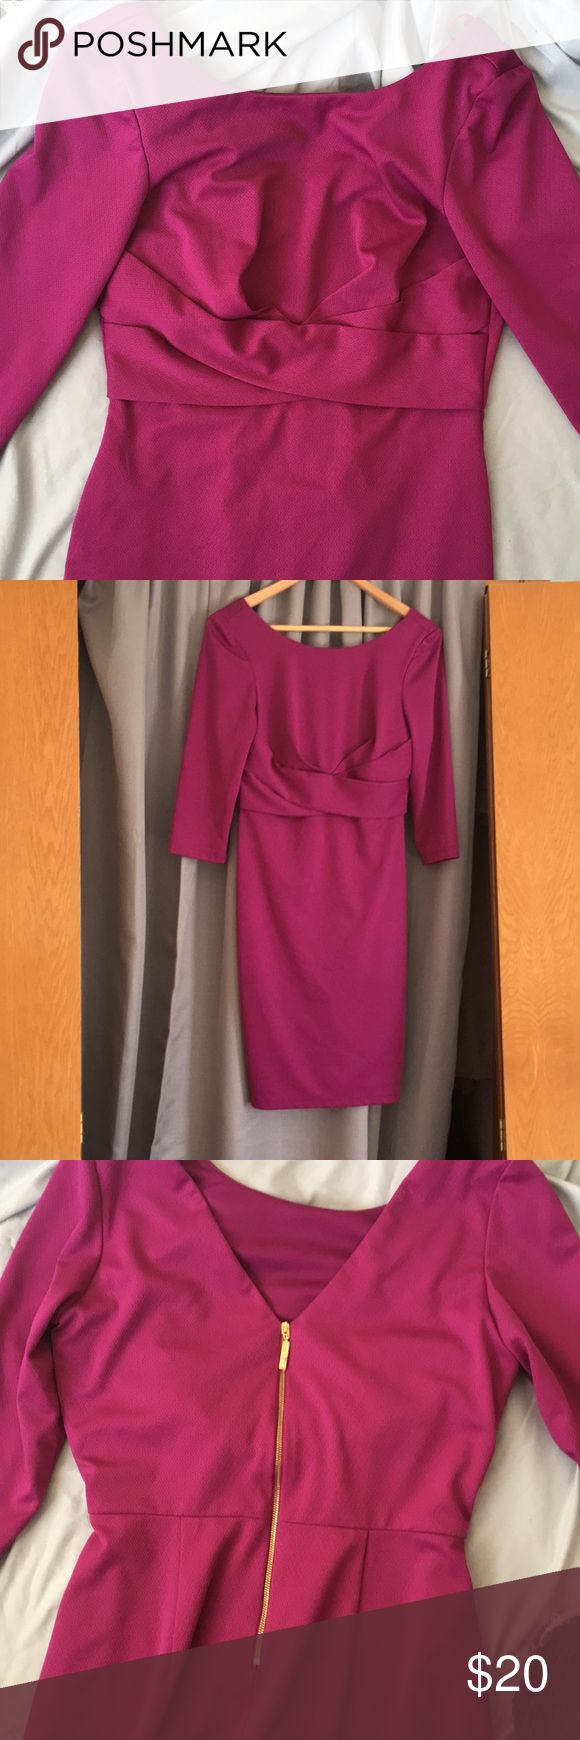 Professional purple work dress 3 quarter length sleeves, hits above knees and cute cut out in back with exposed gold zipper on back. Great for winter with tights or summer as a heavier option. Dresses